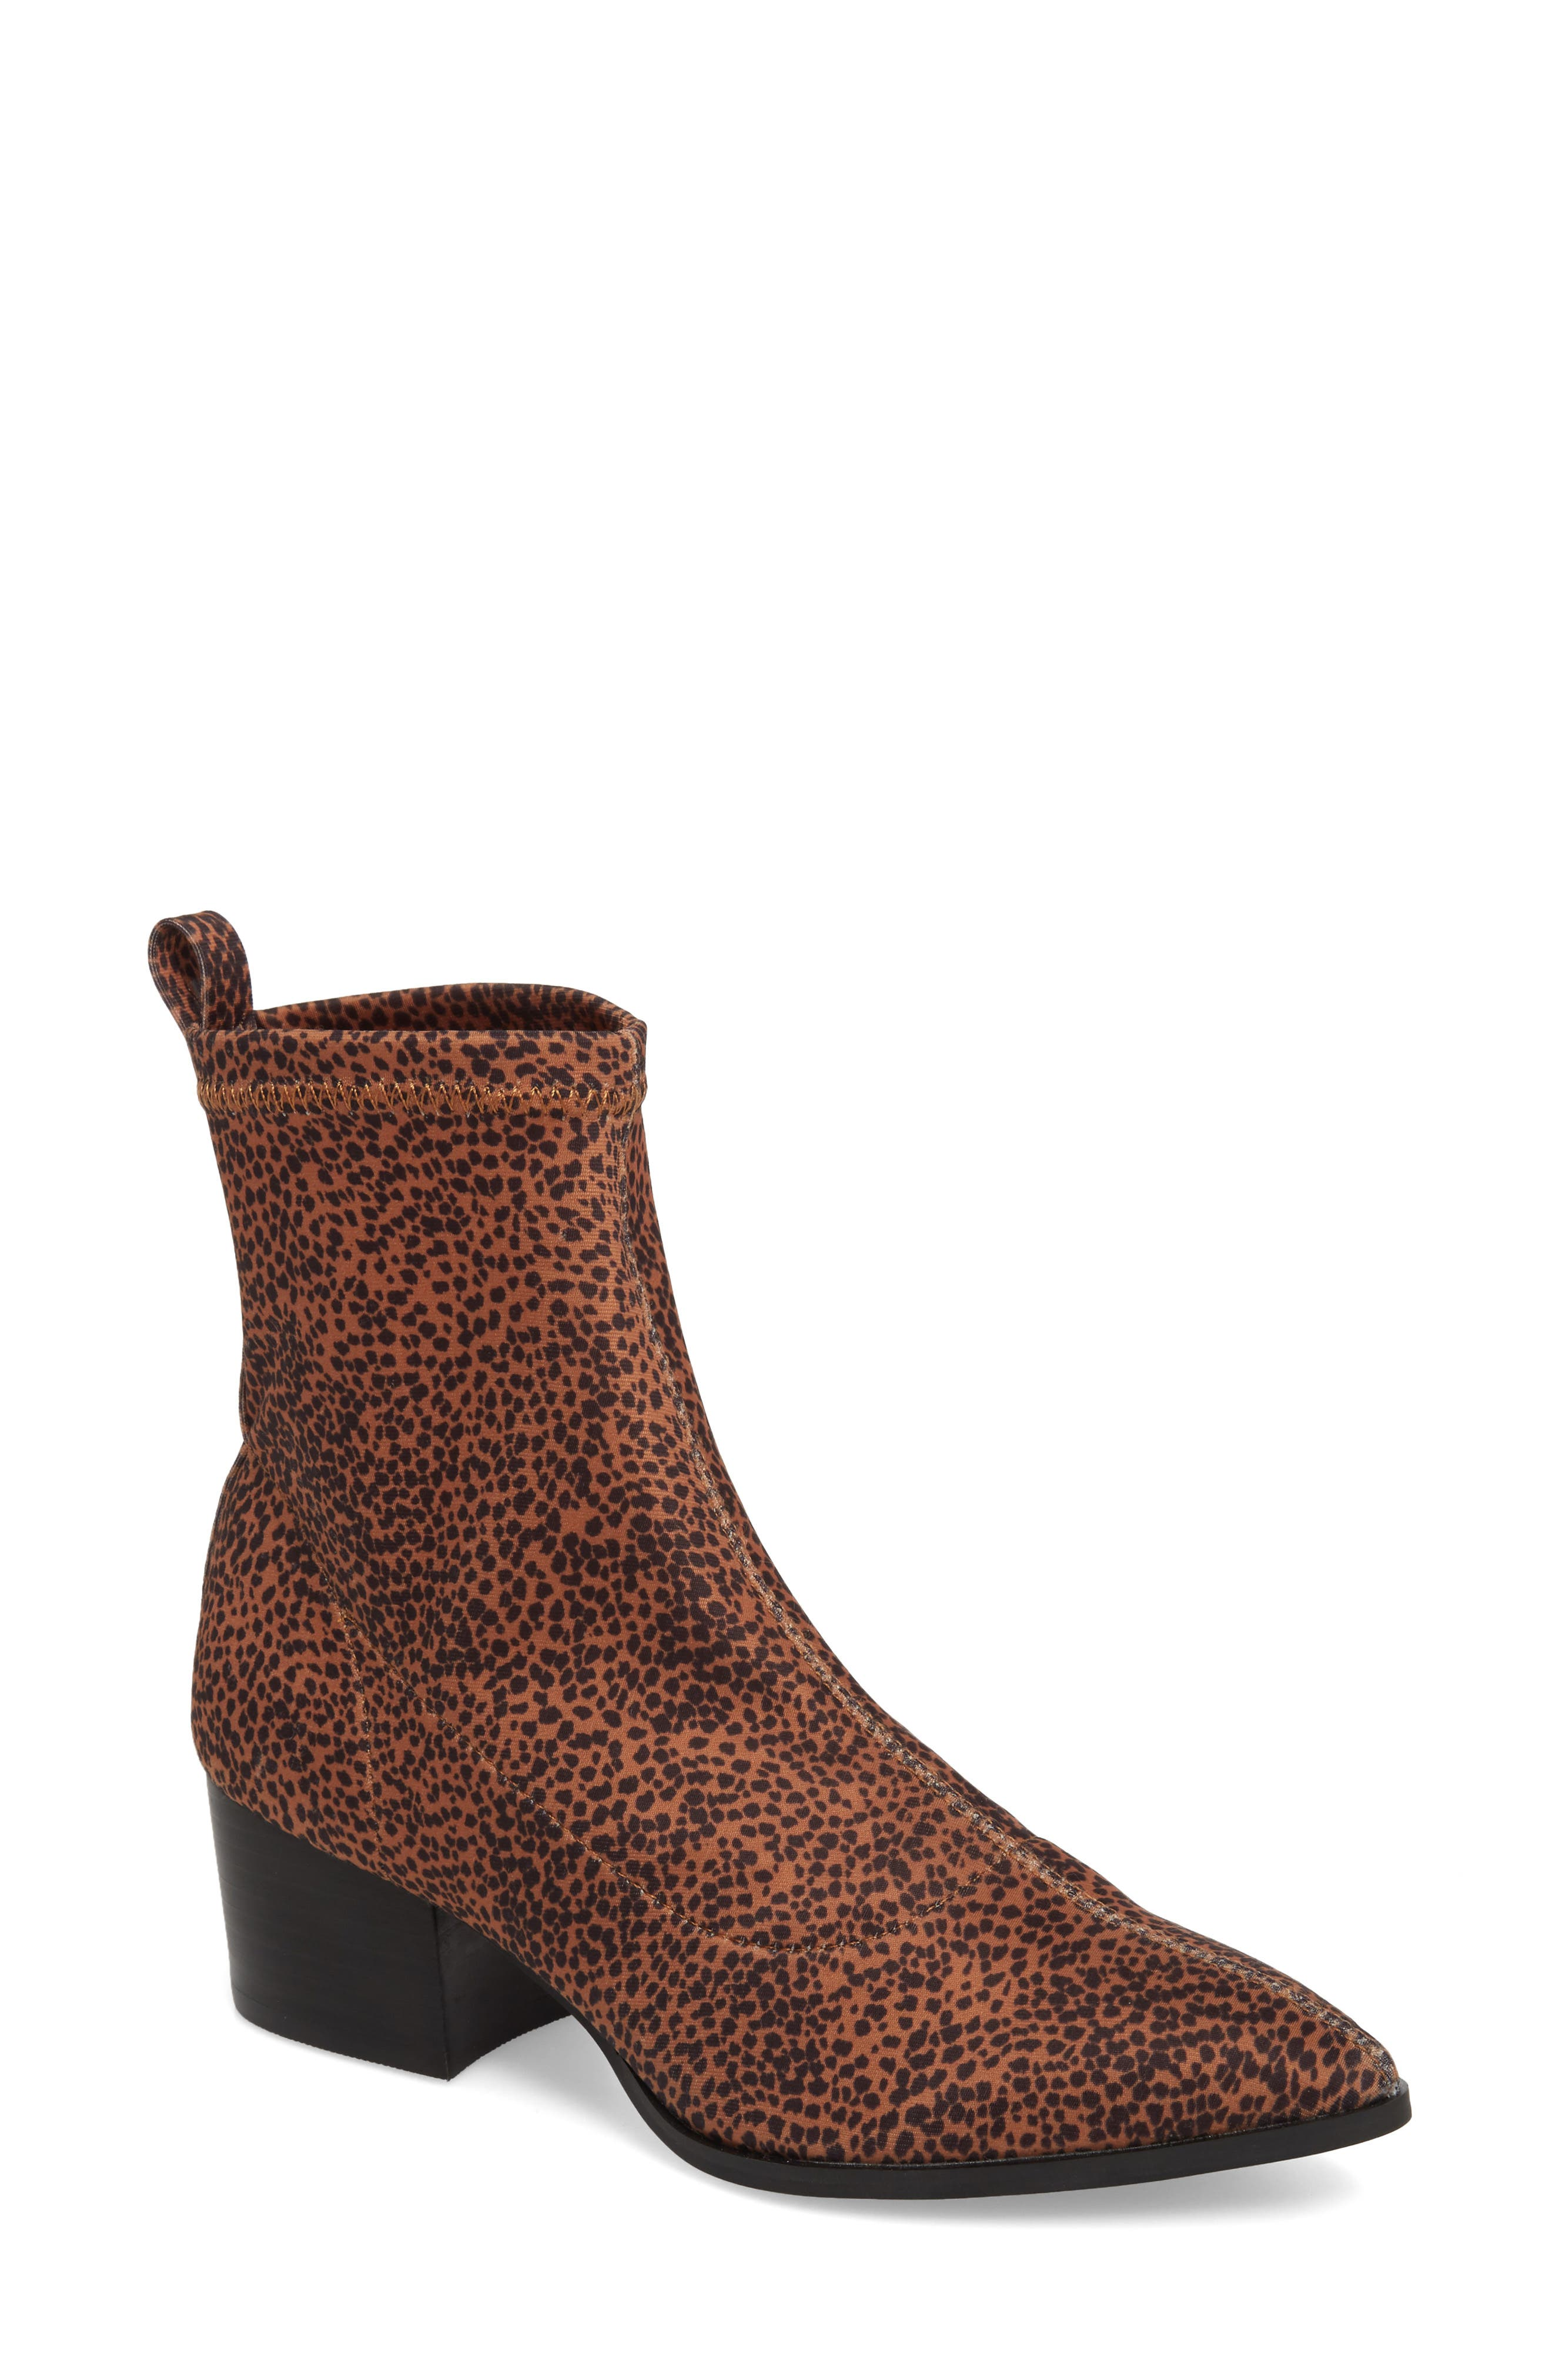 Amuse Society x Matisse Liliana Sock Bootie,                         Main,                         color, Brown Stretch Fabric